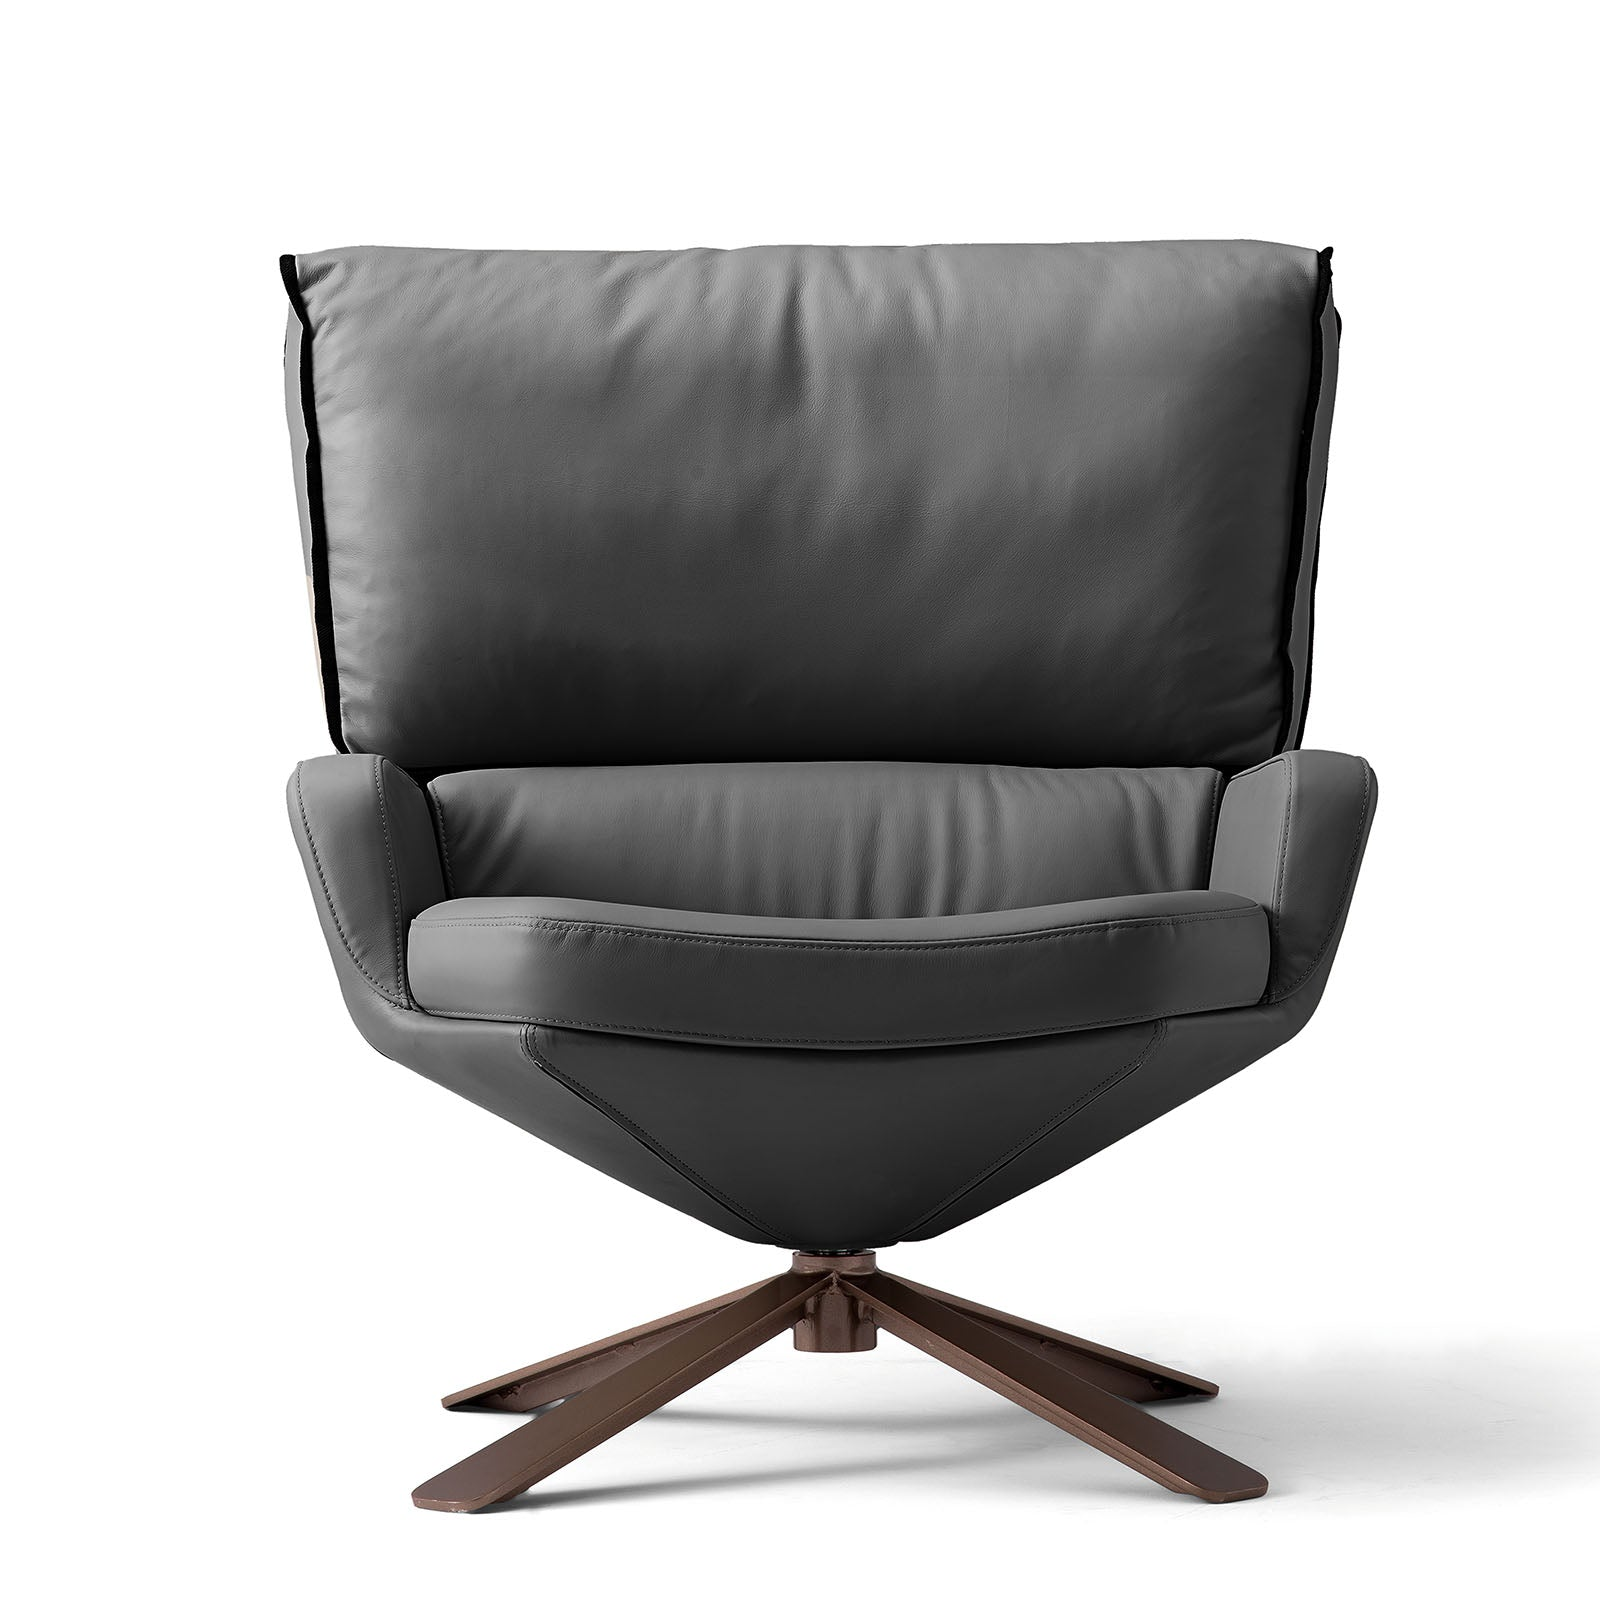 Pre-Order 45 days delivery Varese lounge chair LC043